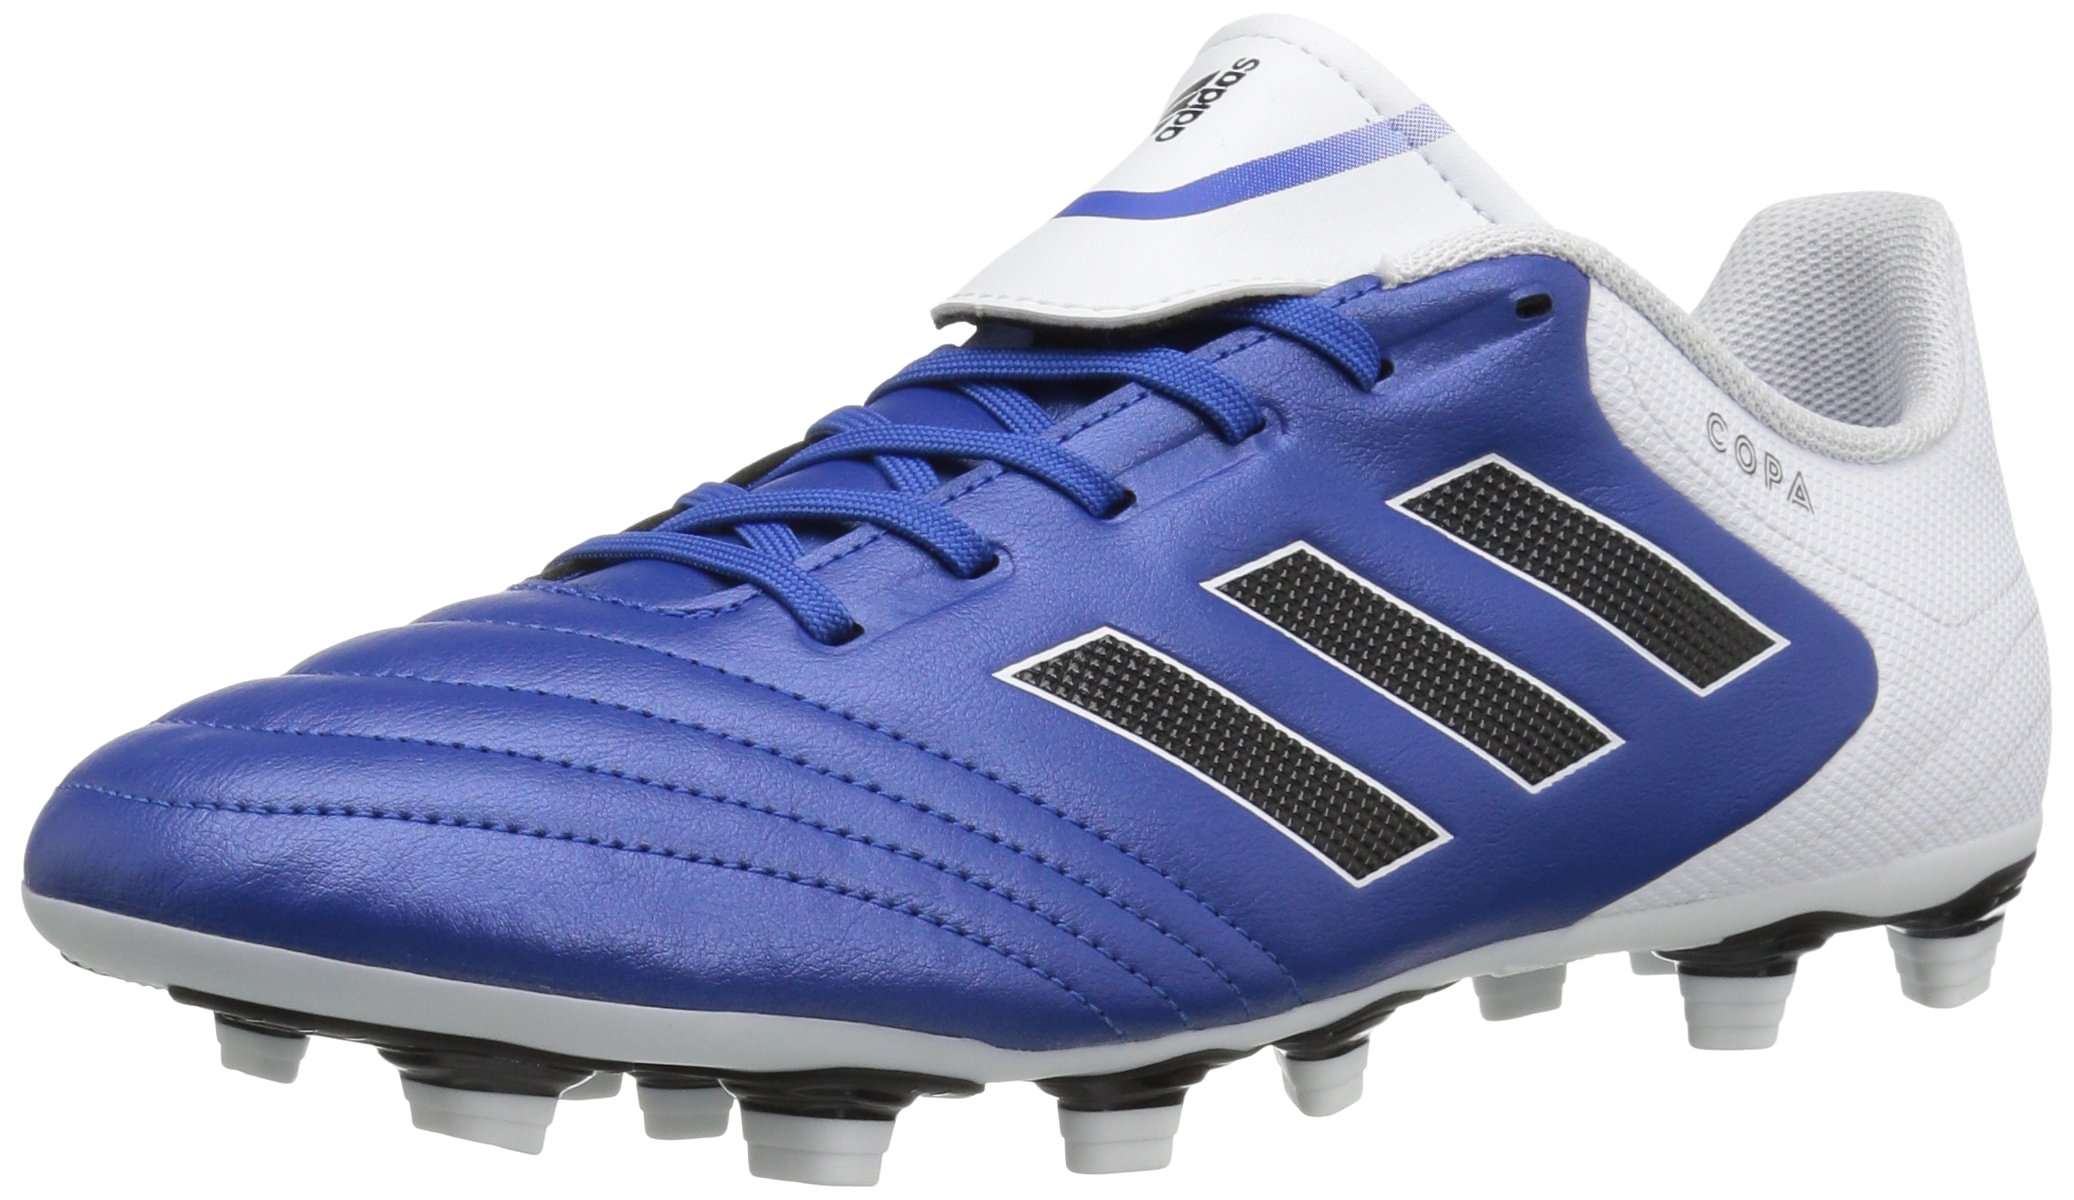 adidas Men's Copa 17.4 FxG Soccer Shoe, Blue/White/Black, 7 M US by adidas